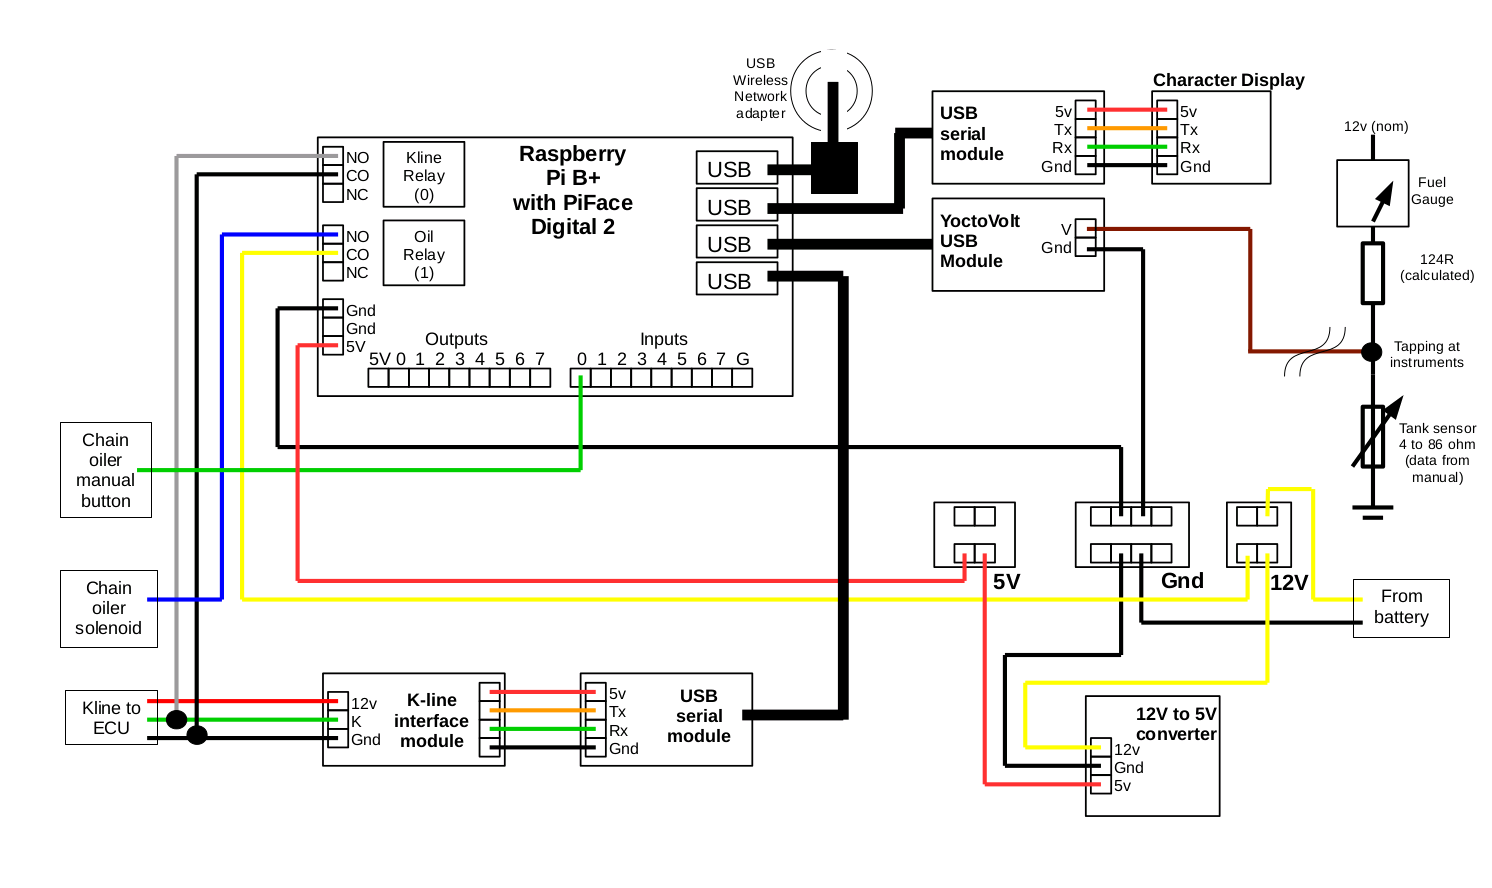 aldl to usb wiring diagram online wiring diagramaldl wiring connection diagram best part of wiring diagramodb2 wiring diagram wiring diagram specialties aldl